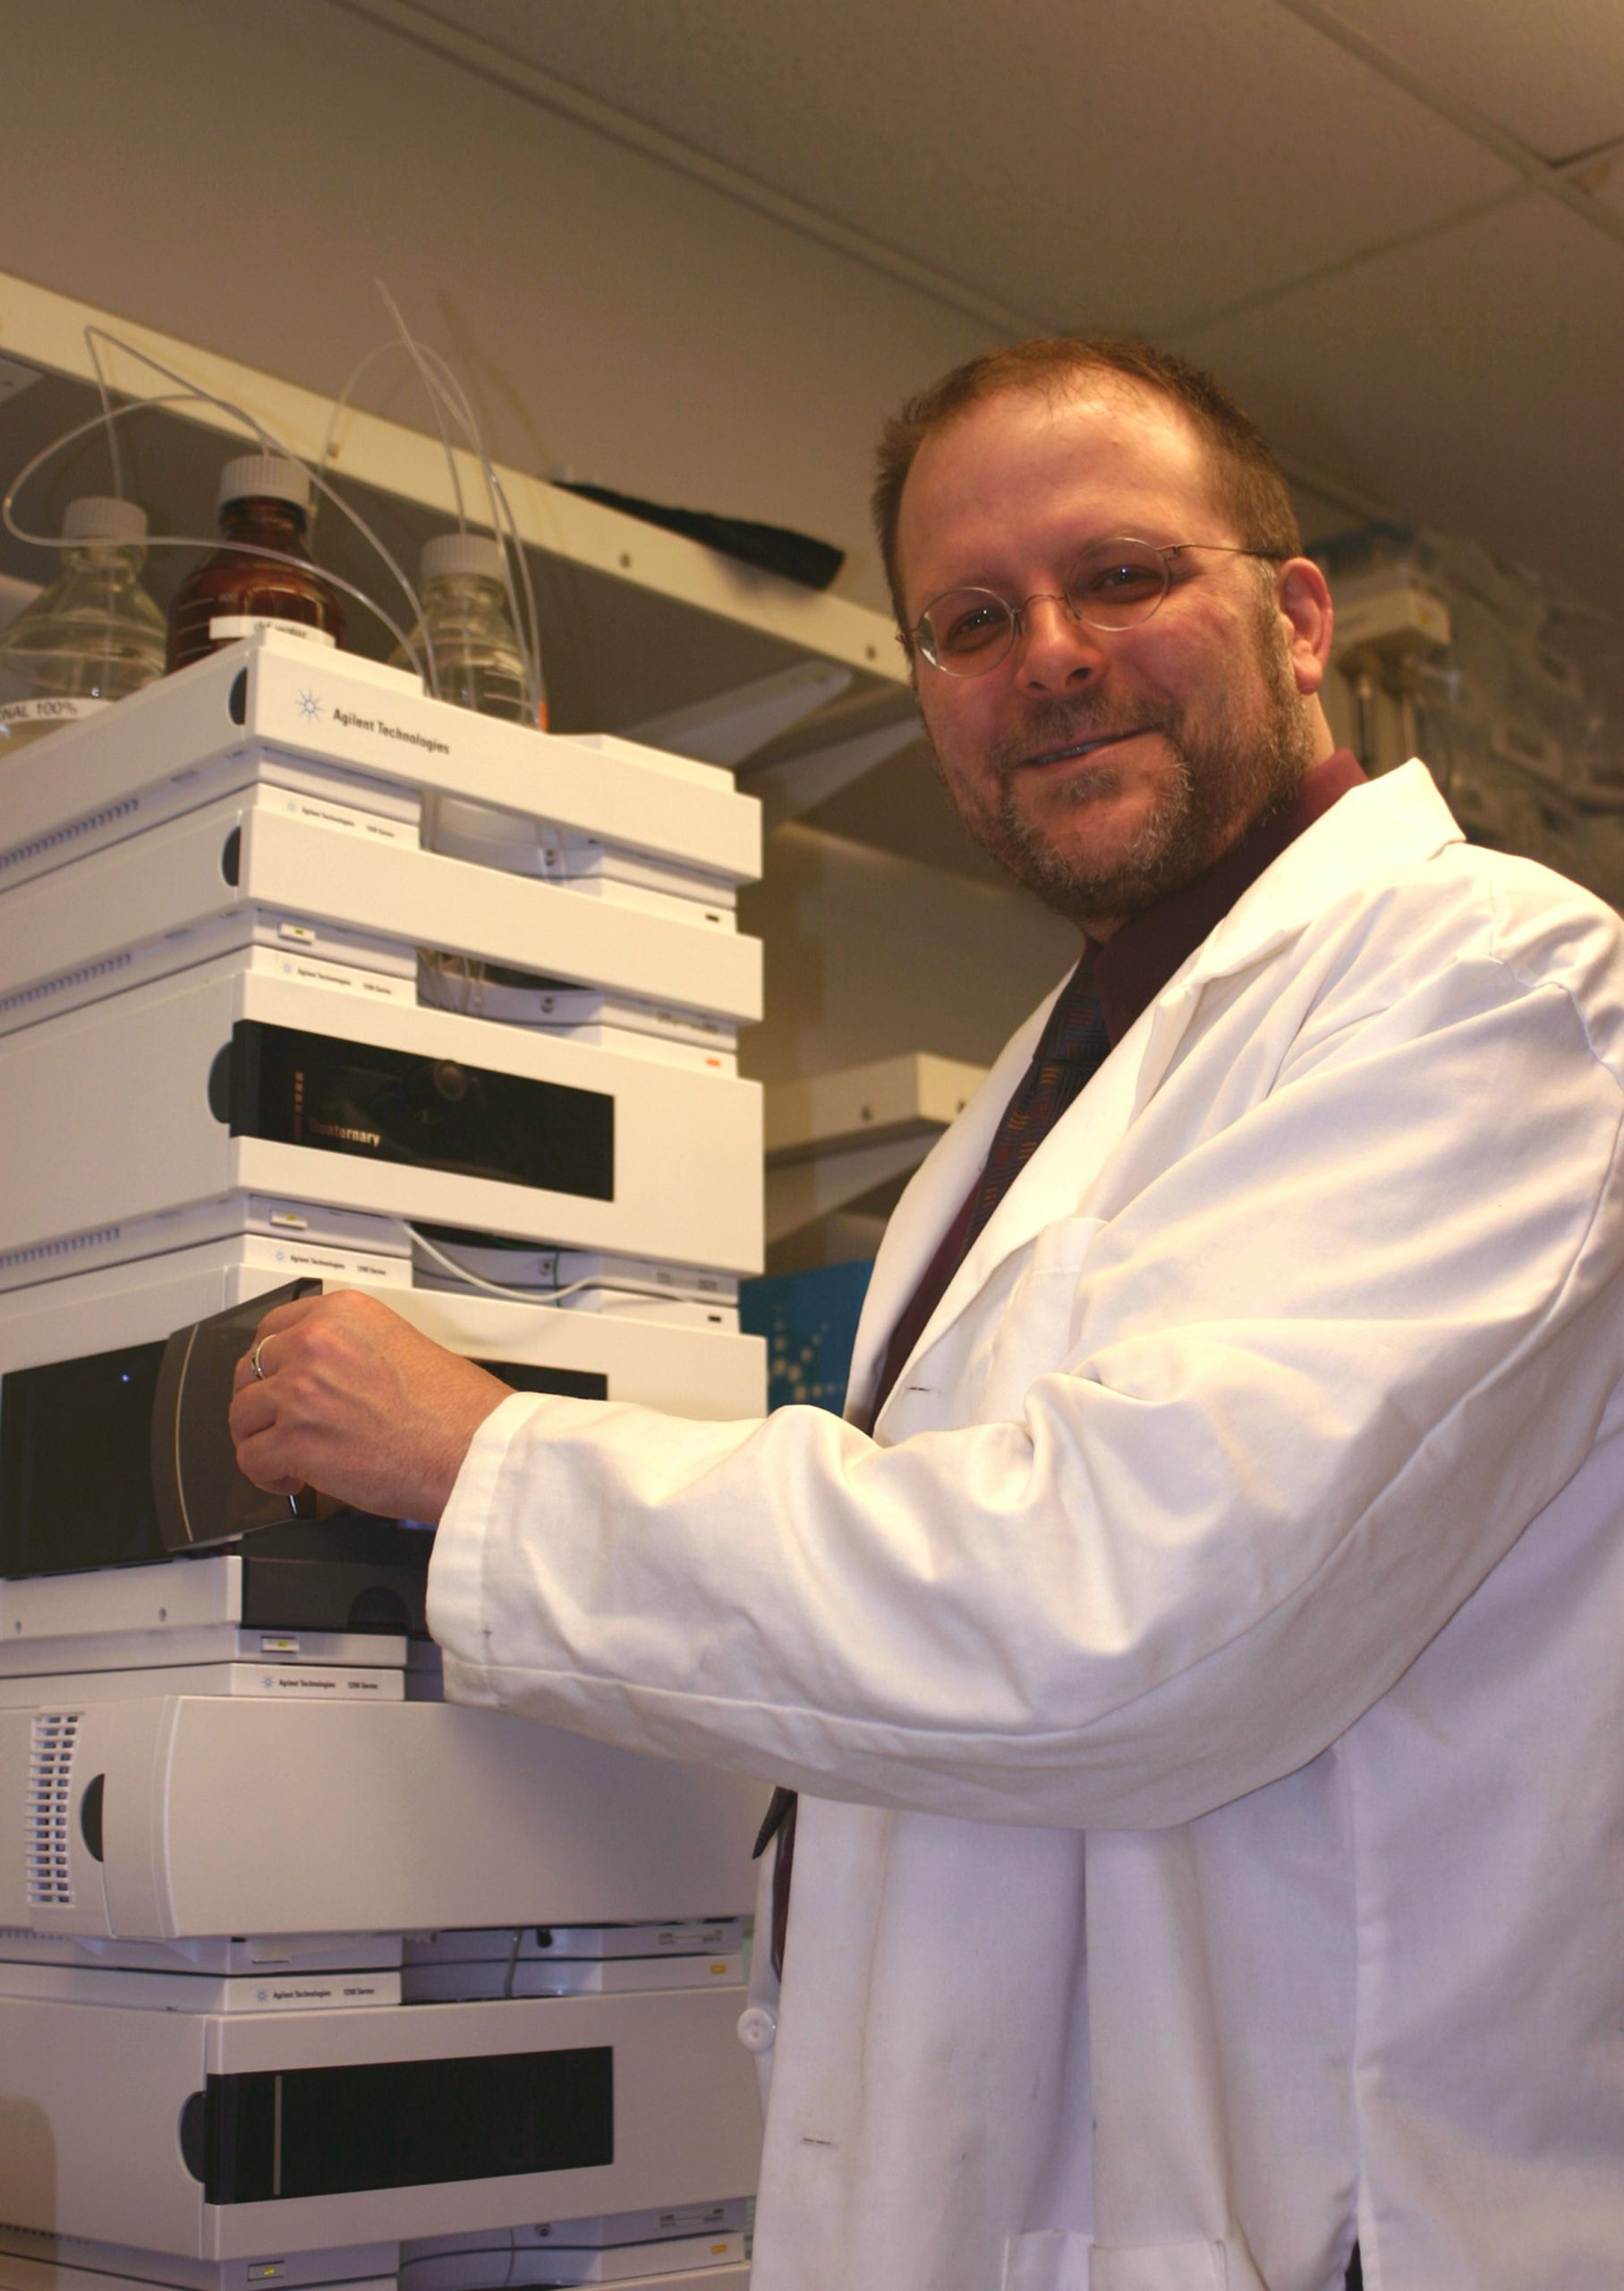 University of Utah bioengineer Patrick  Kiser has discovered a new class of compounds that stick to the AIDS virus' sugary coating to prevent it from infecting cells. The new substances may provide a way to prevent sexual transmission of the virus.